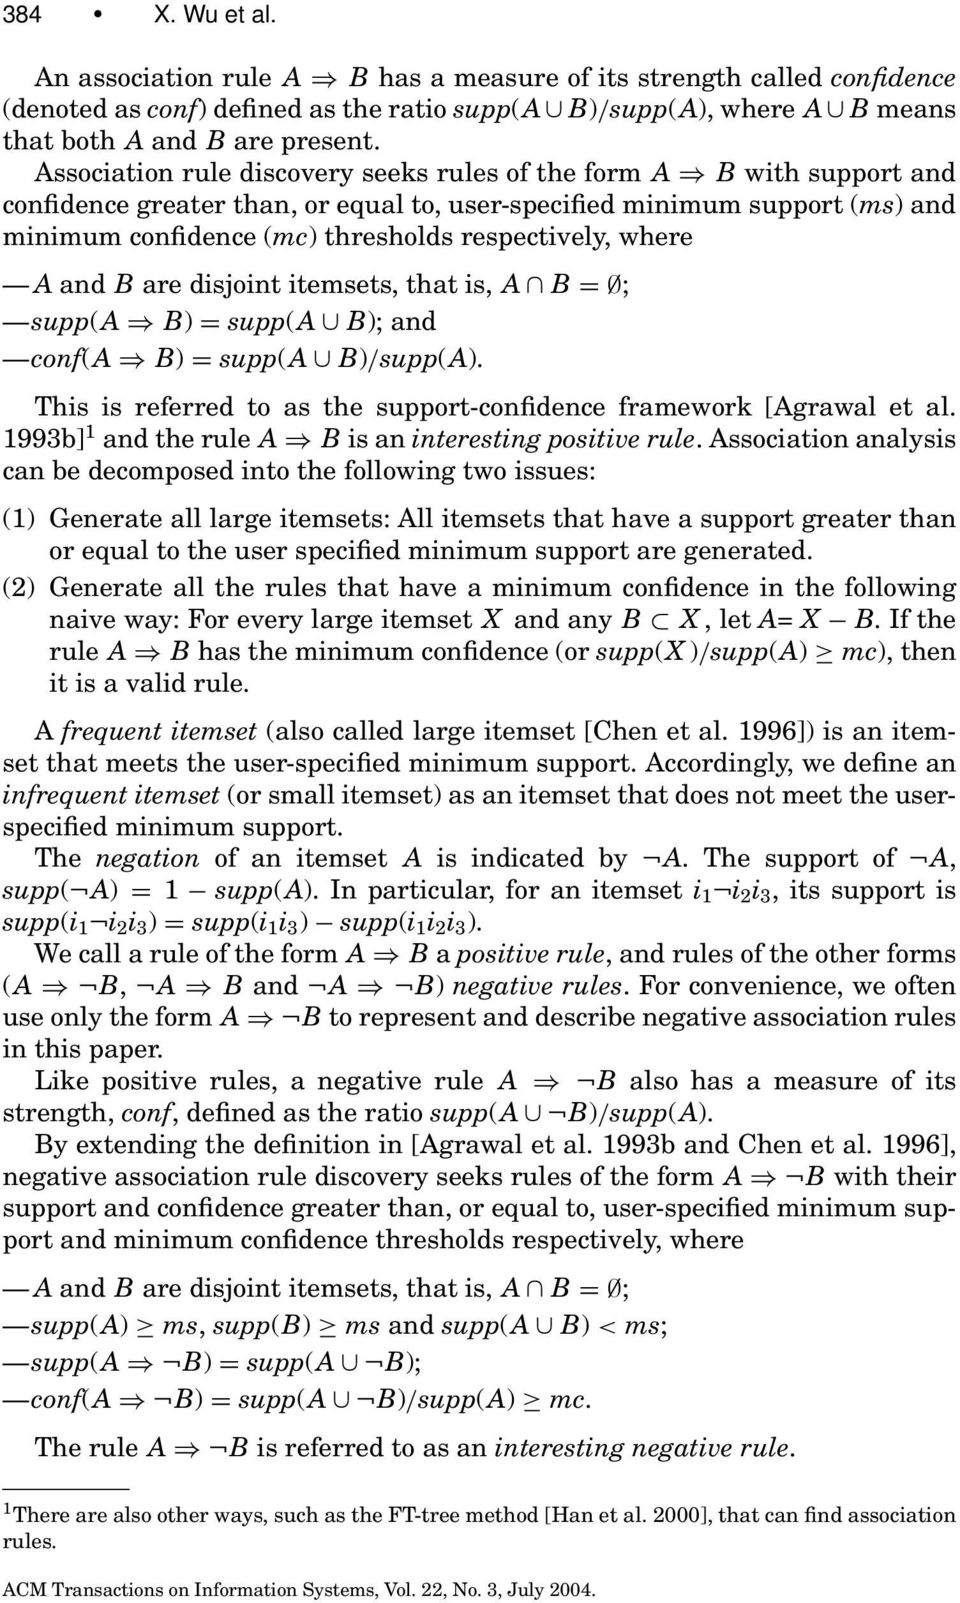 where A and B are disjoint itemsets, that is, A B = ; supp(a B) = supp(a B); and conf(a B) = supp(a B)/supp(A). This is referred to as the support-confidence framework [Agrawal et al.